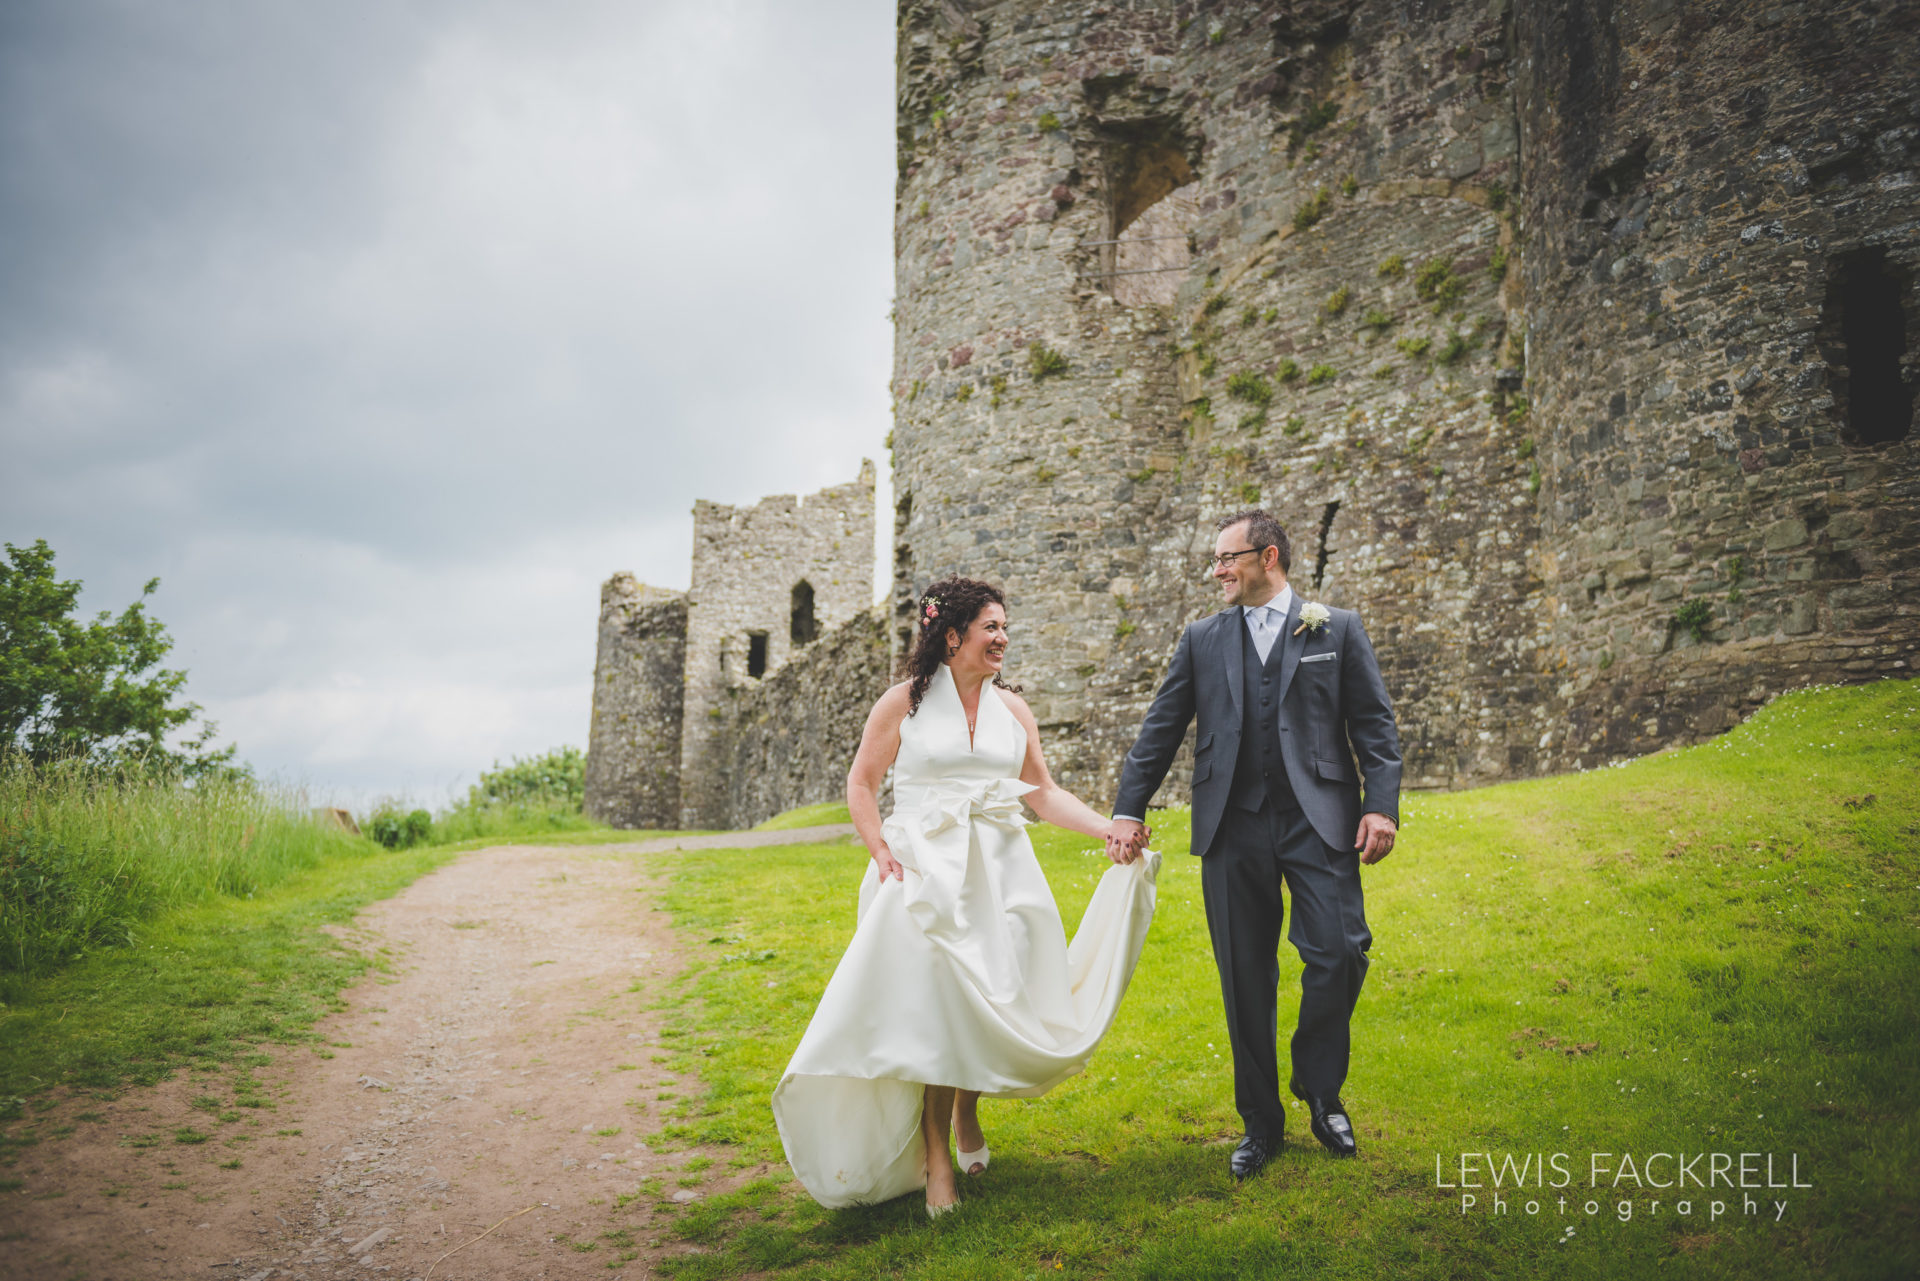 Lewis-Fackrell-Photography-Wedding-Photographer-Cardiff-Swansea-Bristol-Newport-Pre-wedding-photoshoot-Rhian-Mark-Mansion-House-Llansteffan-Carmarthenshire--69